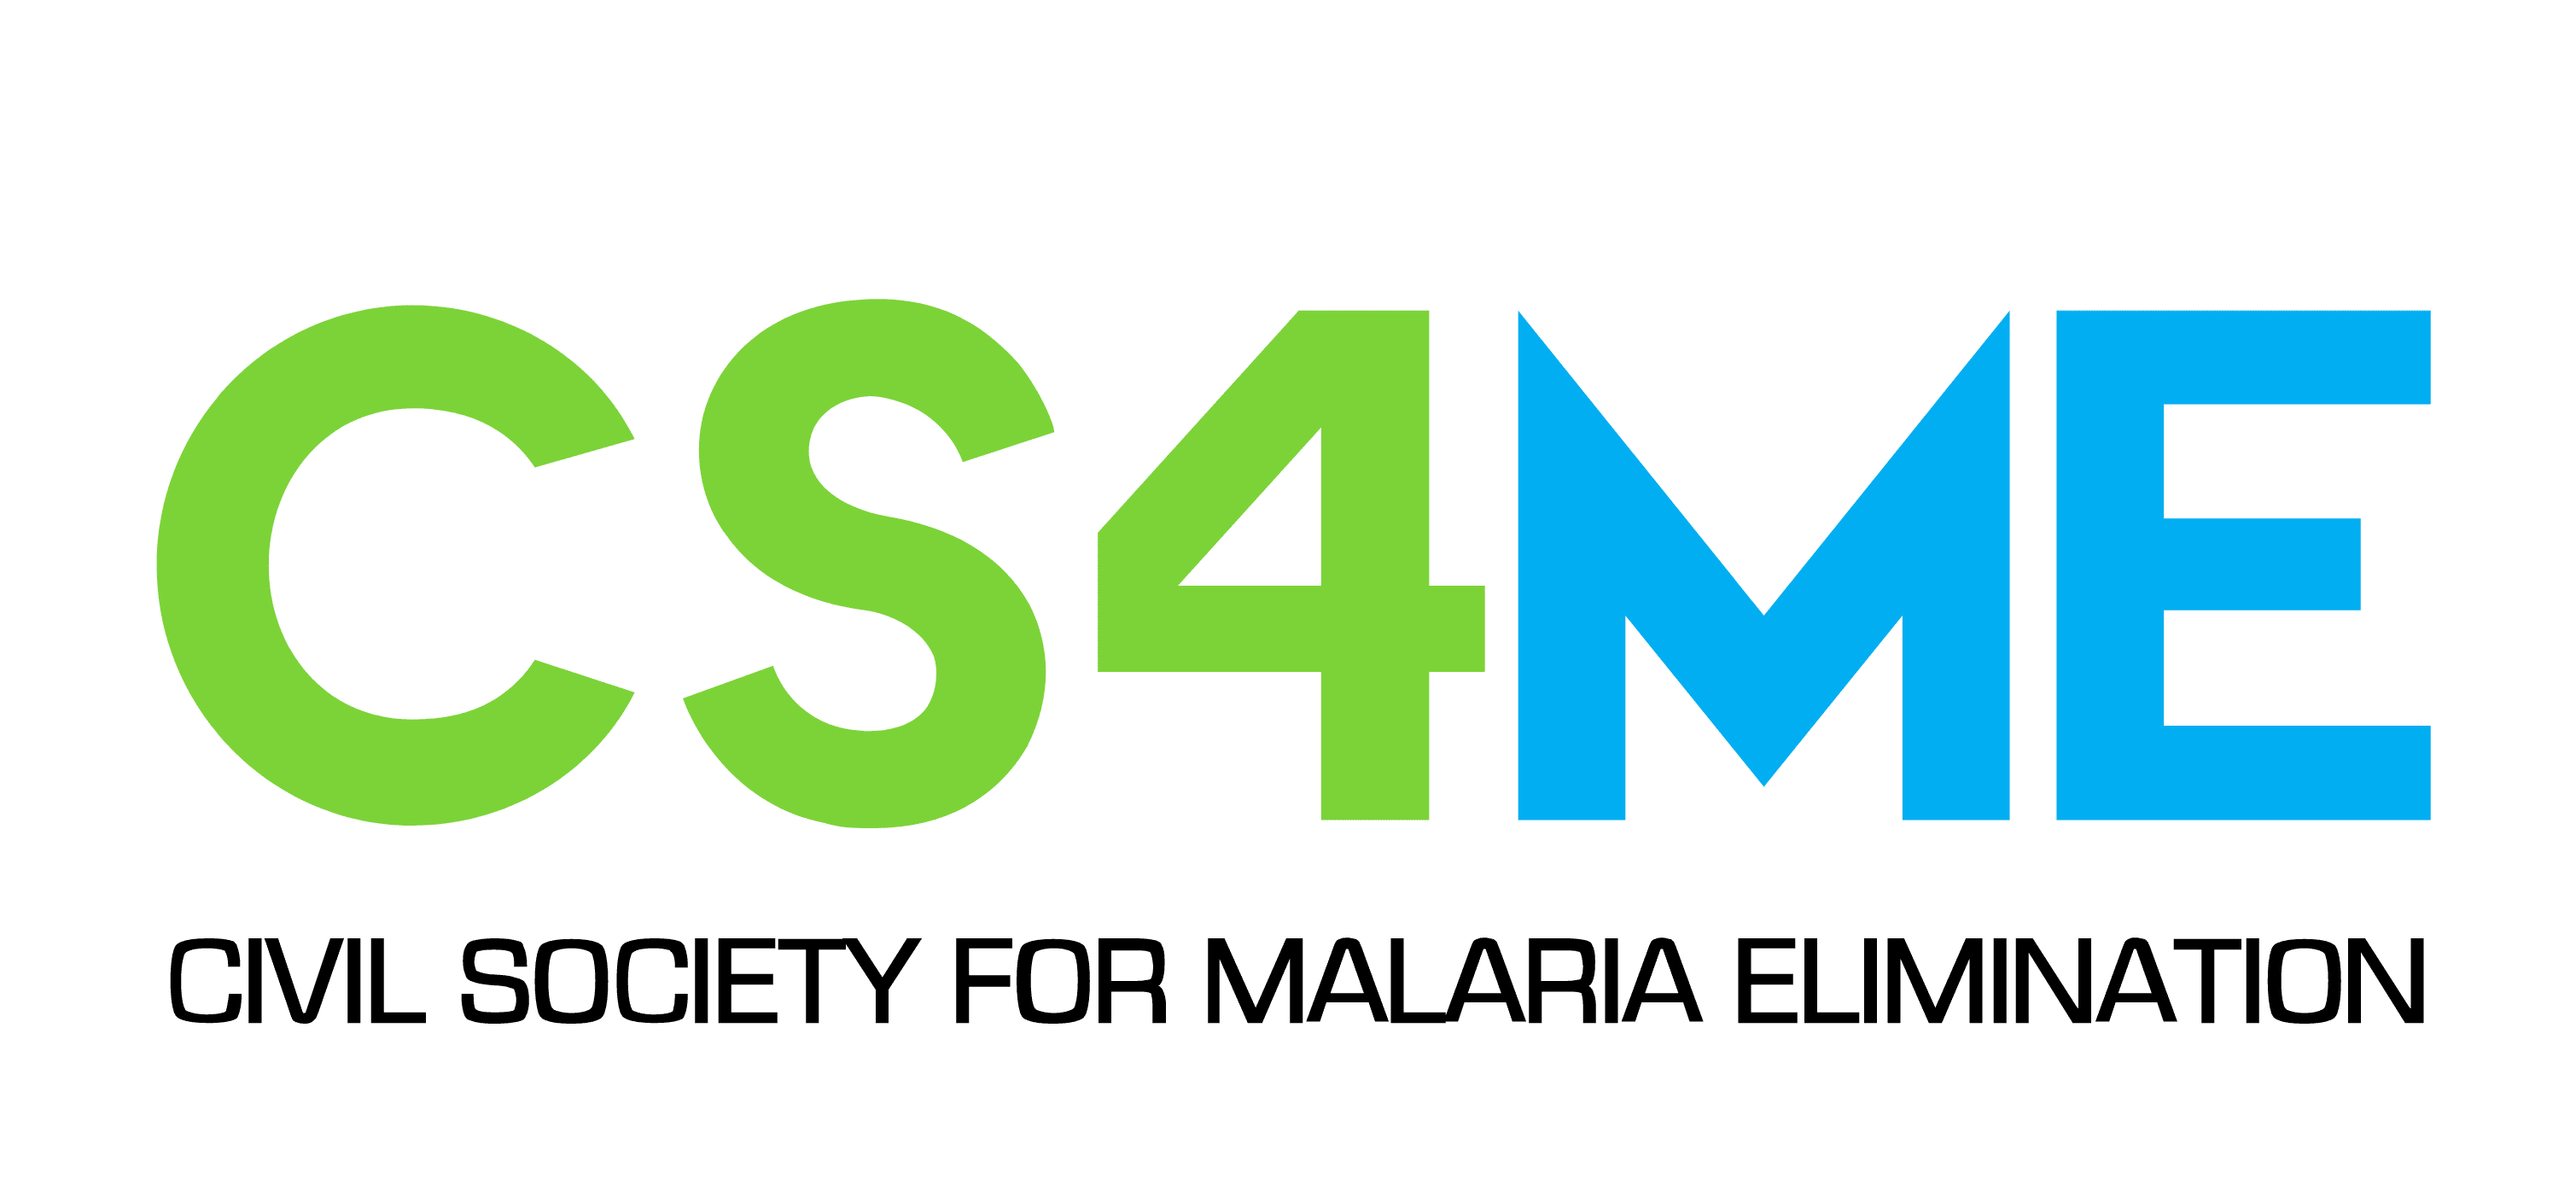 Civil Society For Malaria Elimination